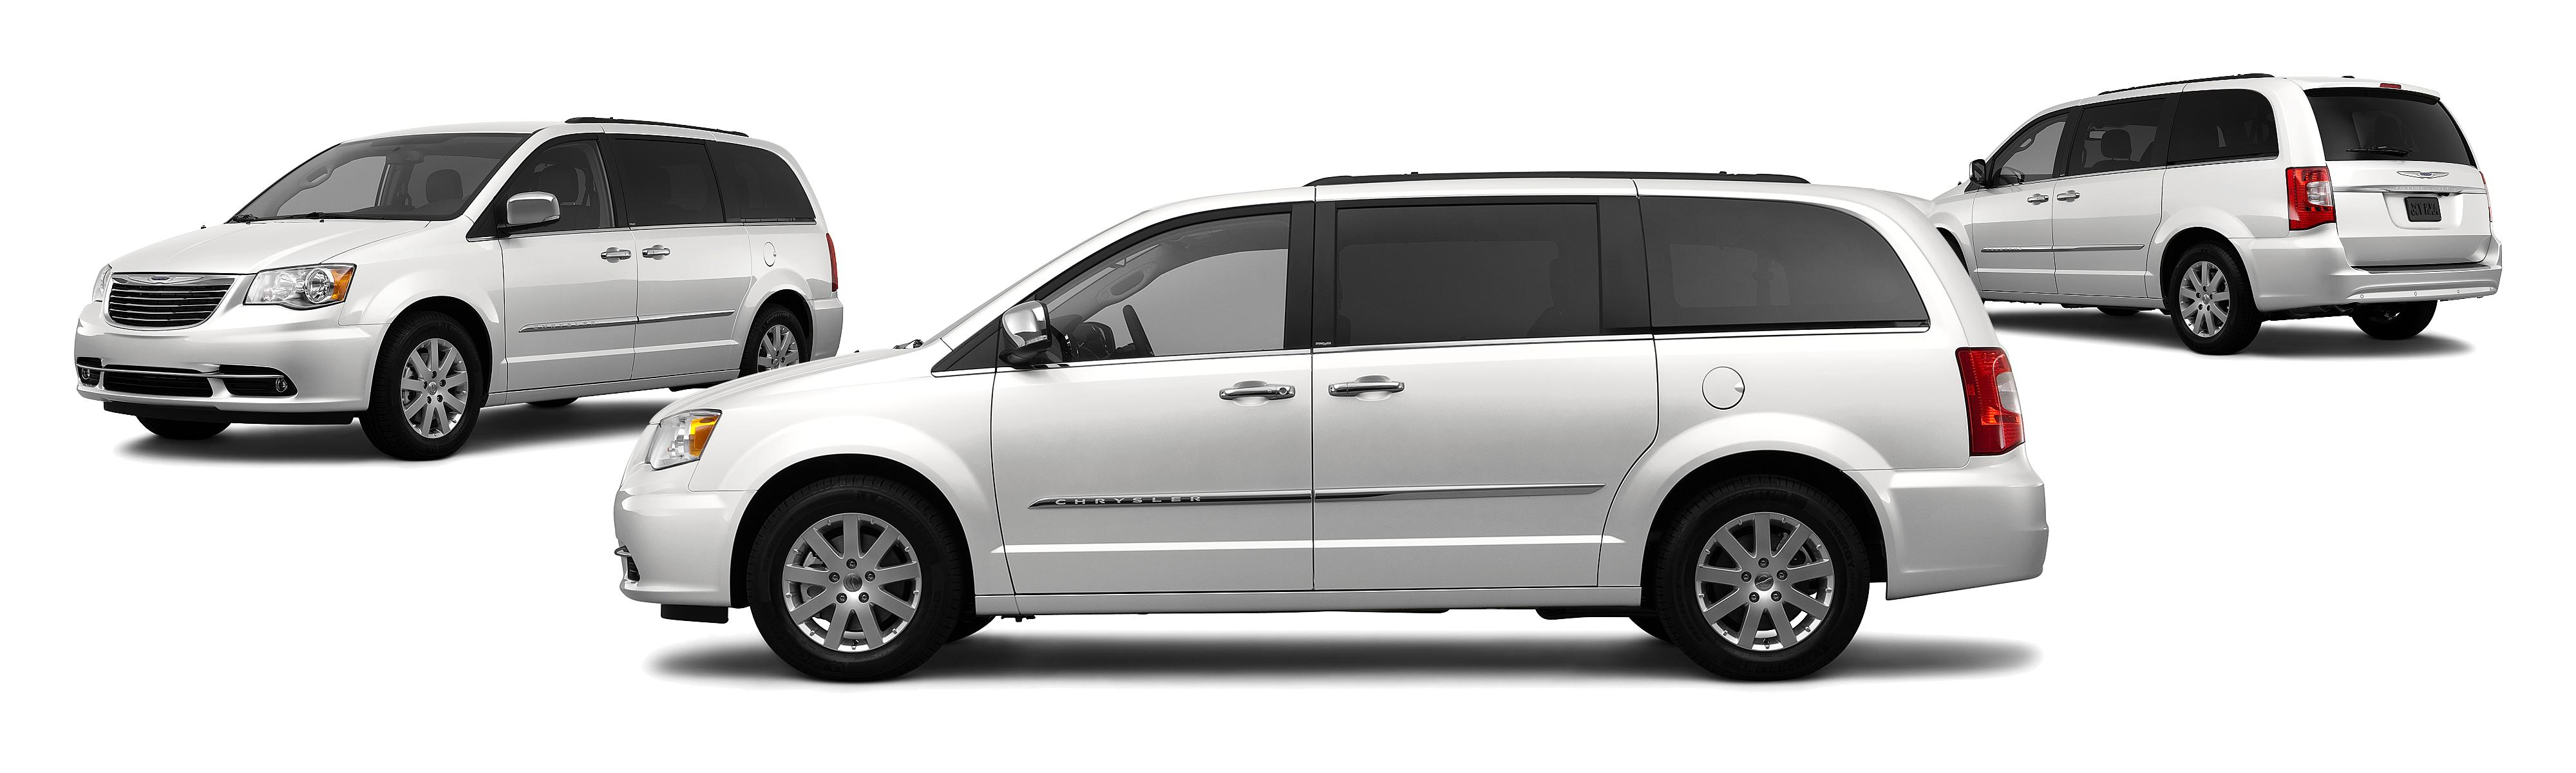 2012-chrysler-town-and-country-touring-4dr-mini-van-stone-white-composite-large Great Description About 2012 Chrysler town and Country Recalls with Amazing Photos Cars Review